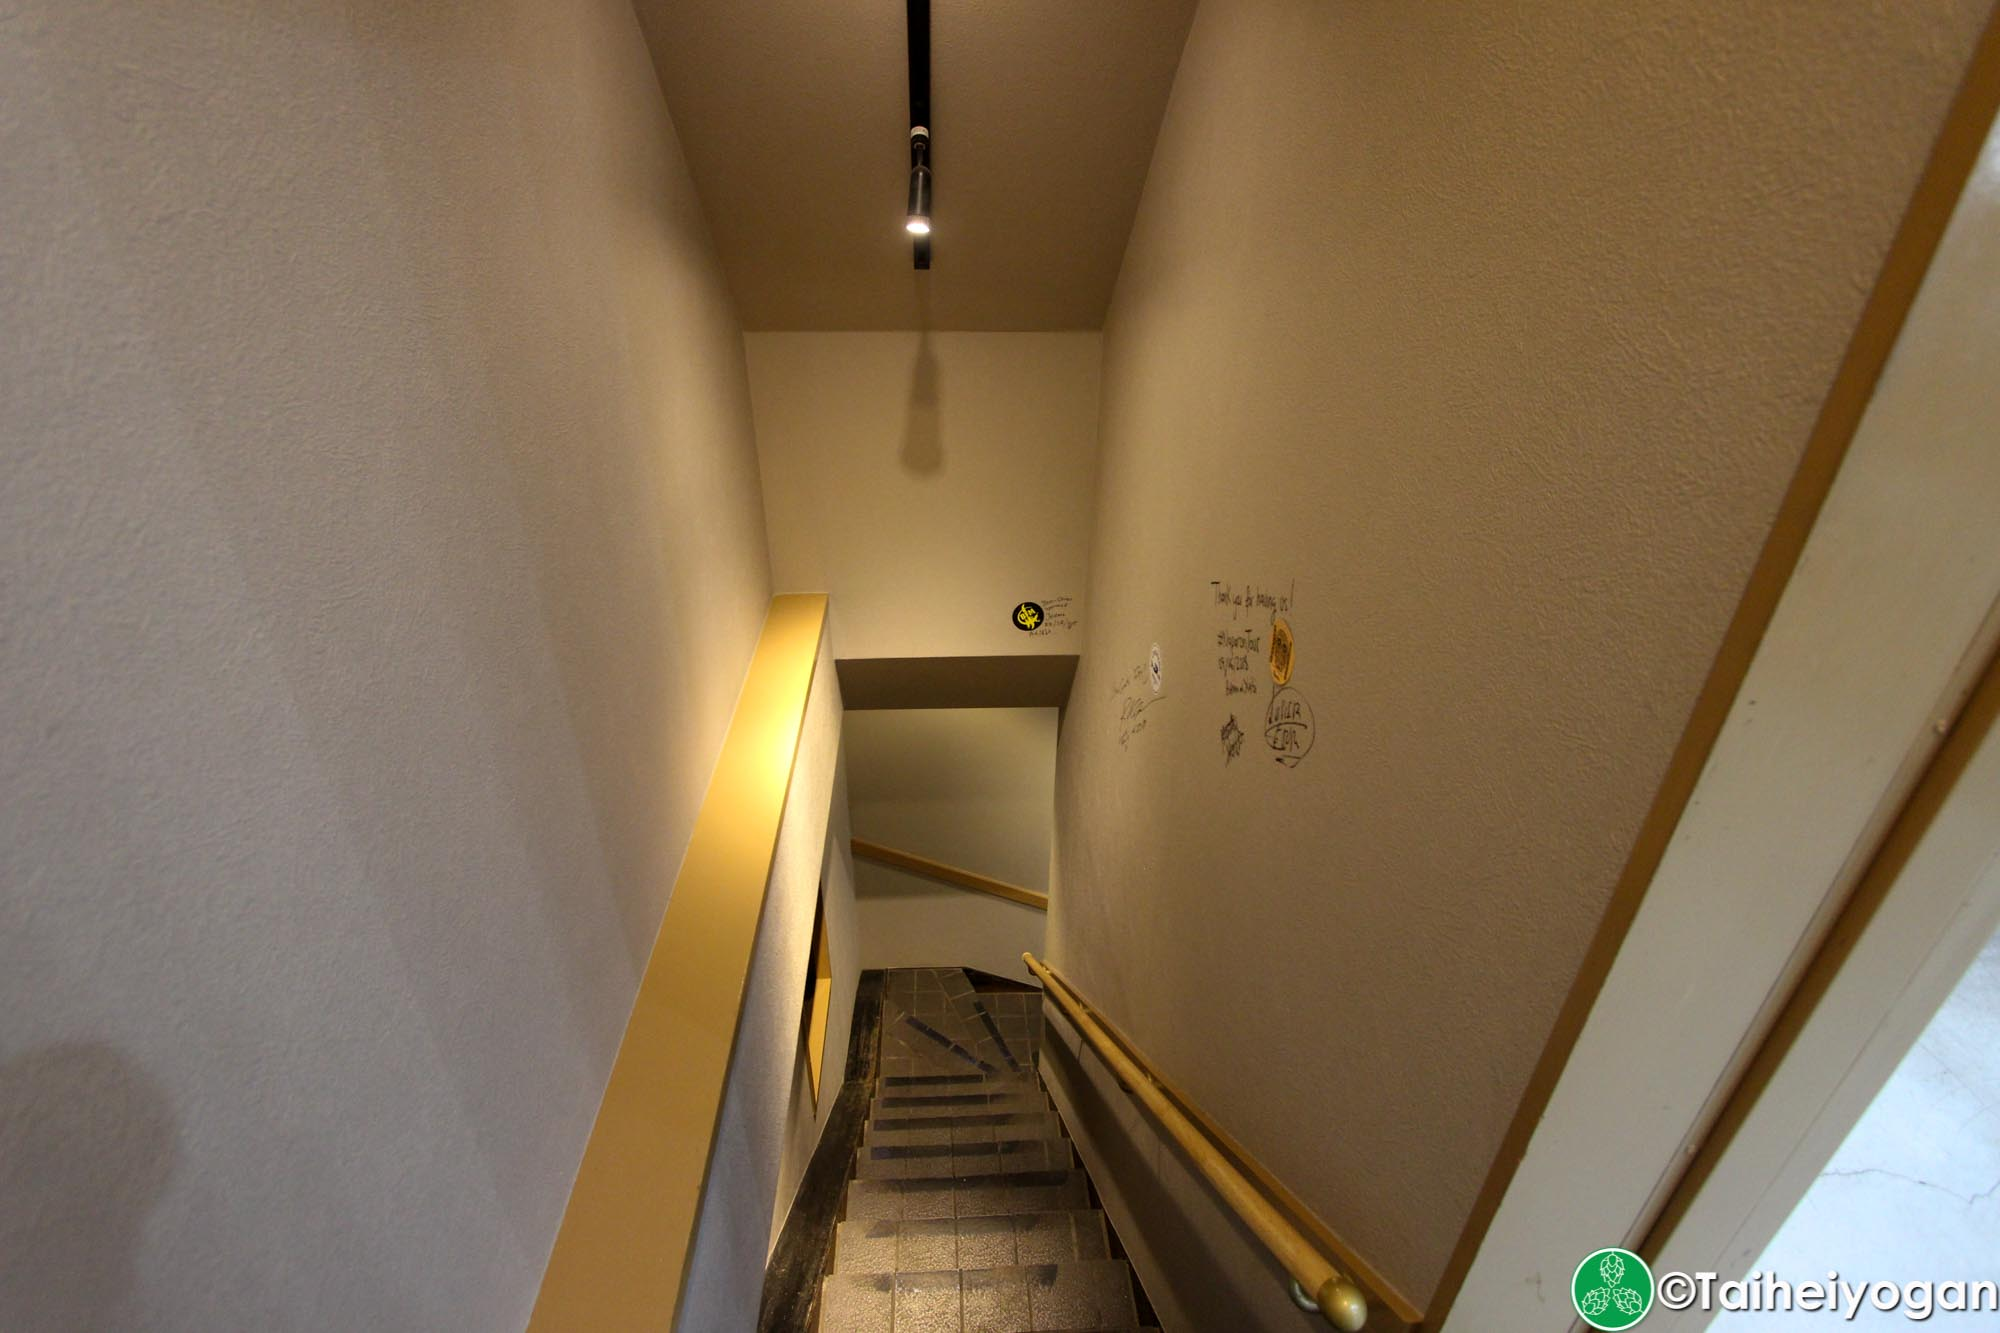 Beer Ma (Kanda) - 2F - Stairs to 1F